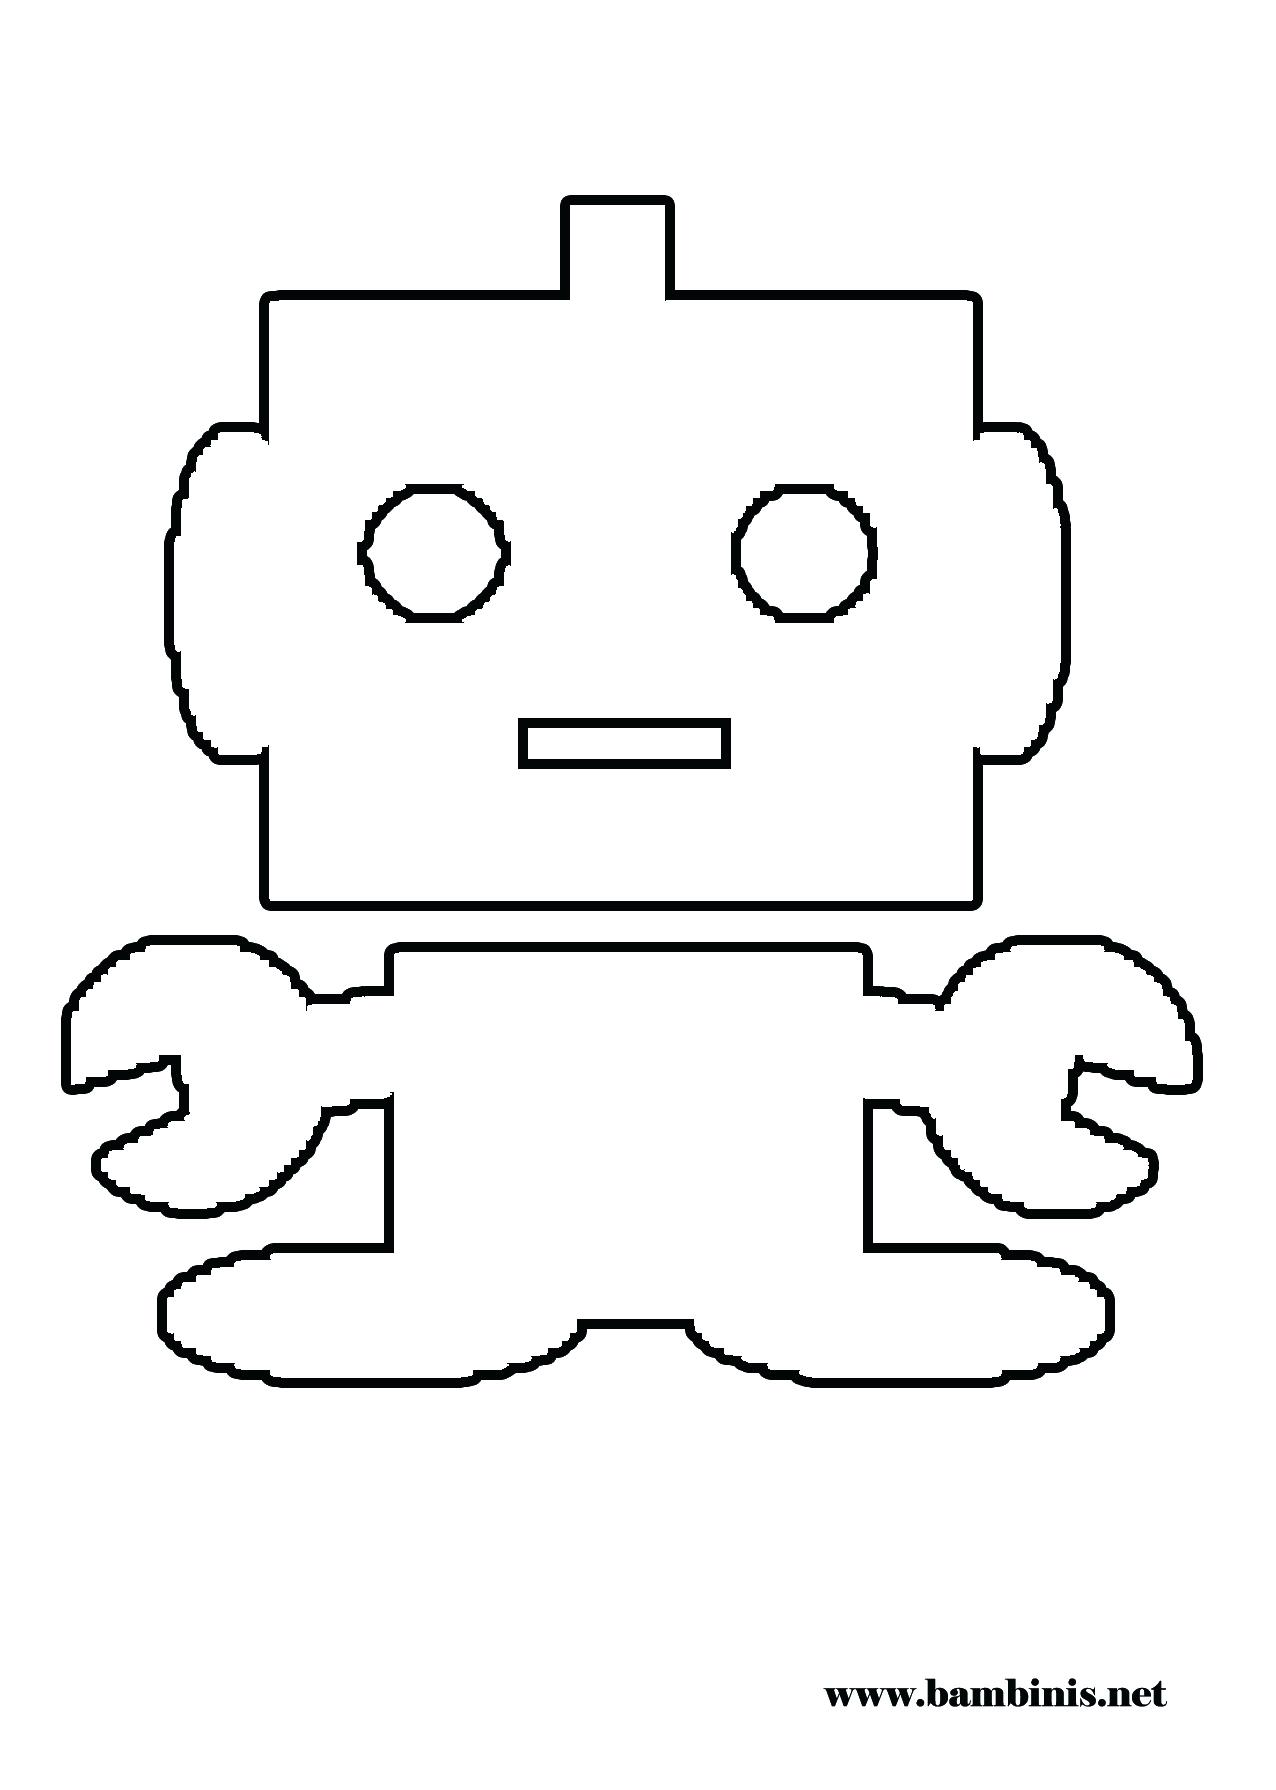 1276x1790 Coloring Remarkable Robot Coloring Pages. Robot Coloring Pages